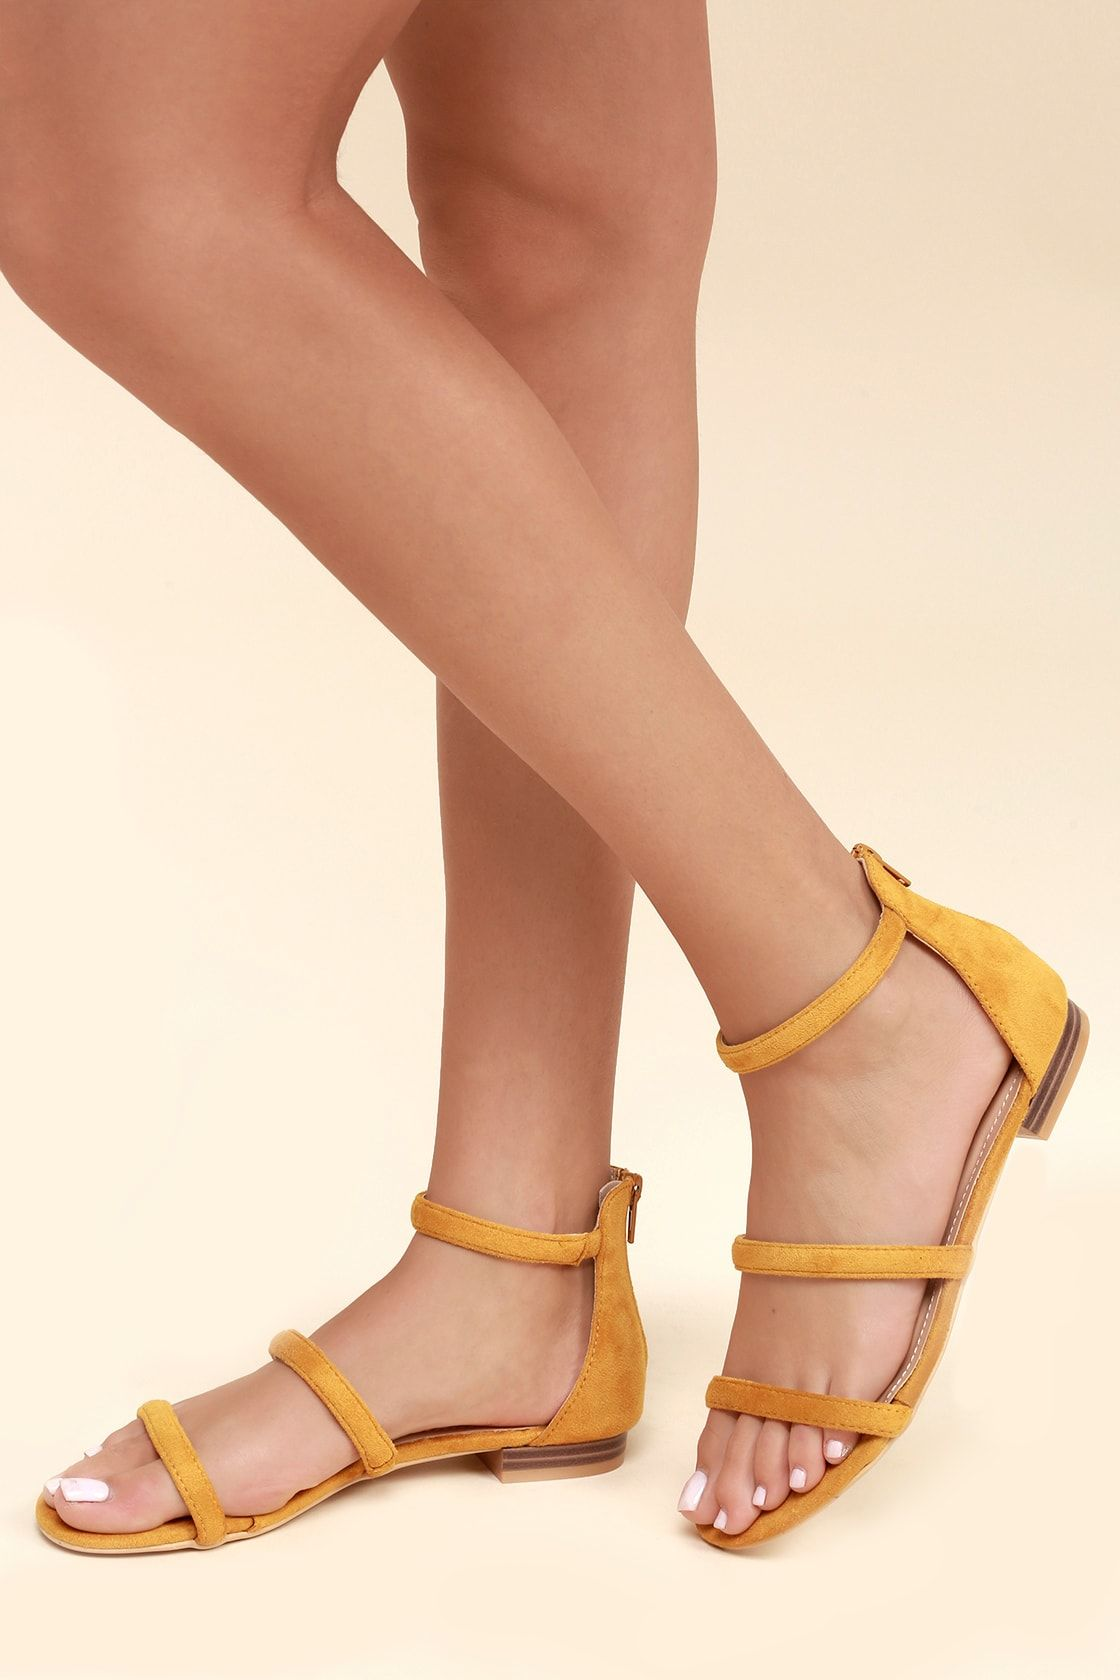 a4b2ff8cb991c Lulus | Quin Mustard Suede Flat Sandal Heels | Size 10 | Yellow ...